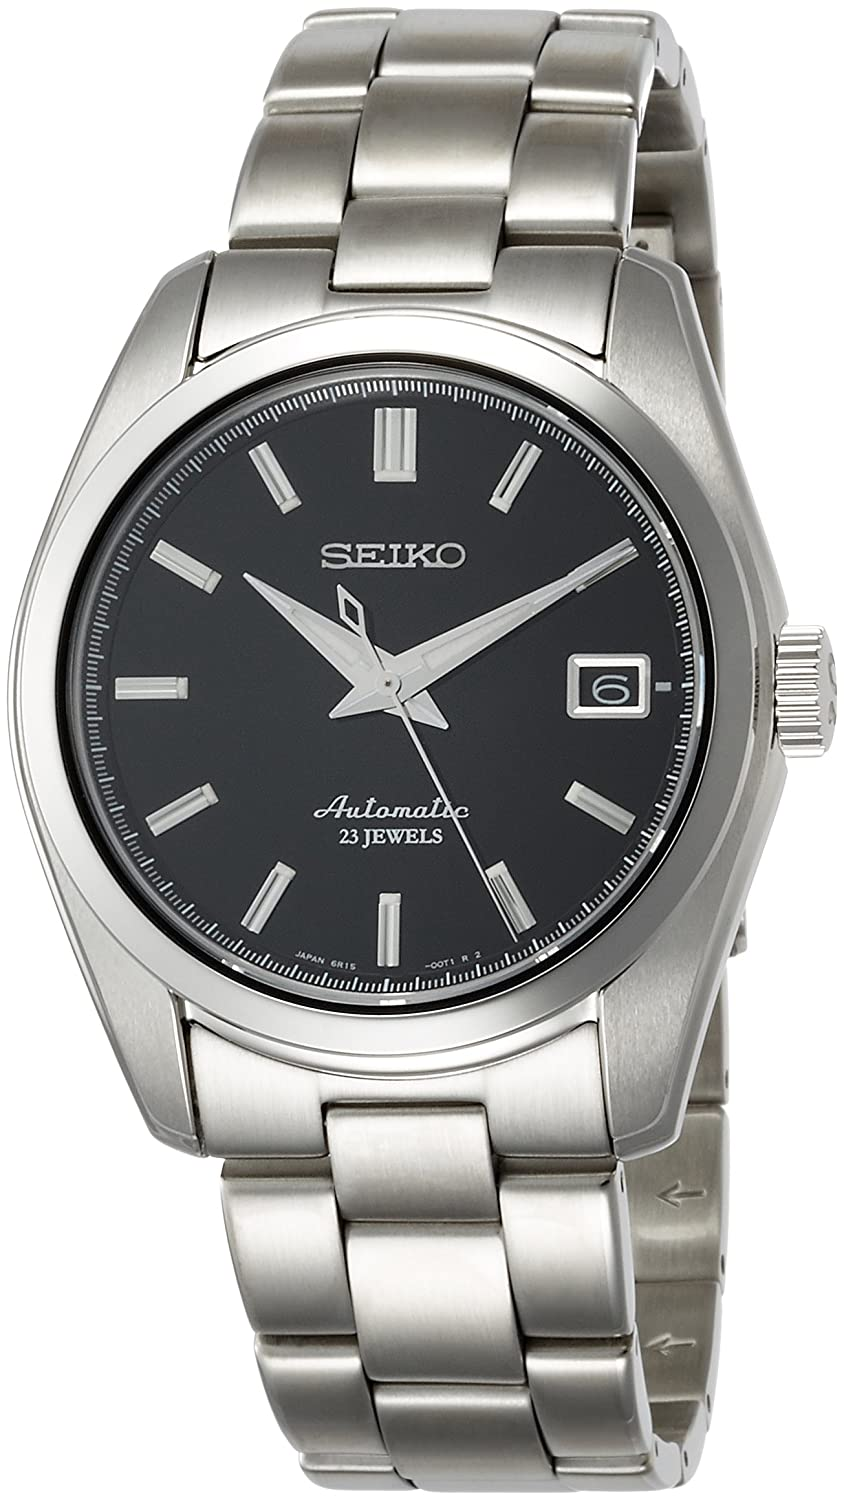 Seiko Men s Japanese-Automatic Watch with Stainless-Steel Strap, Silver, 20 Model SARB033